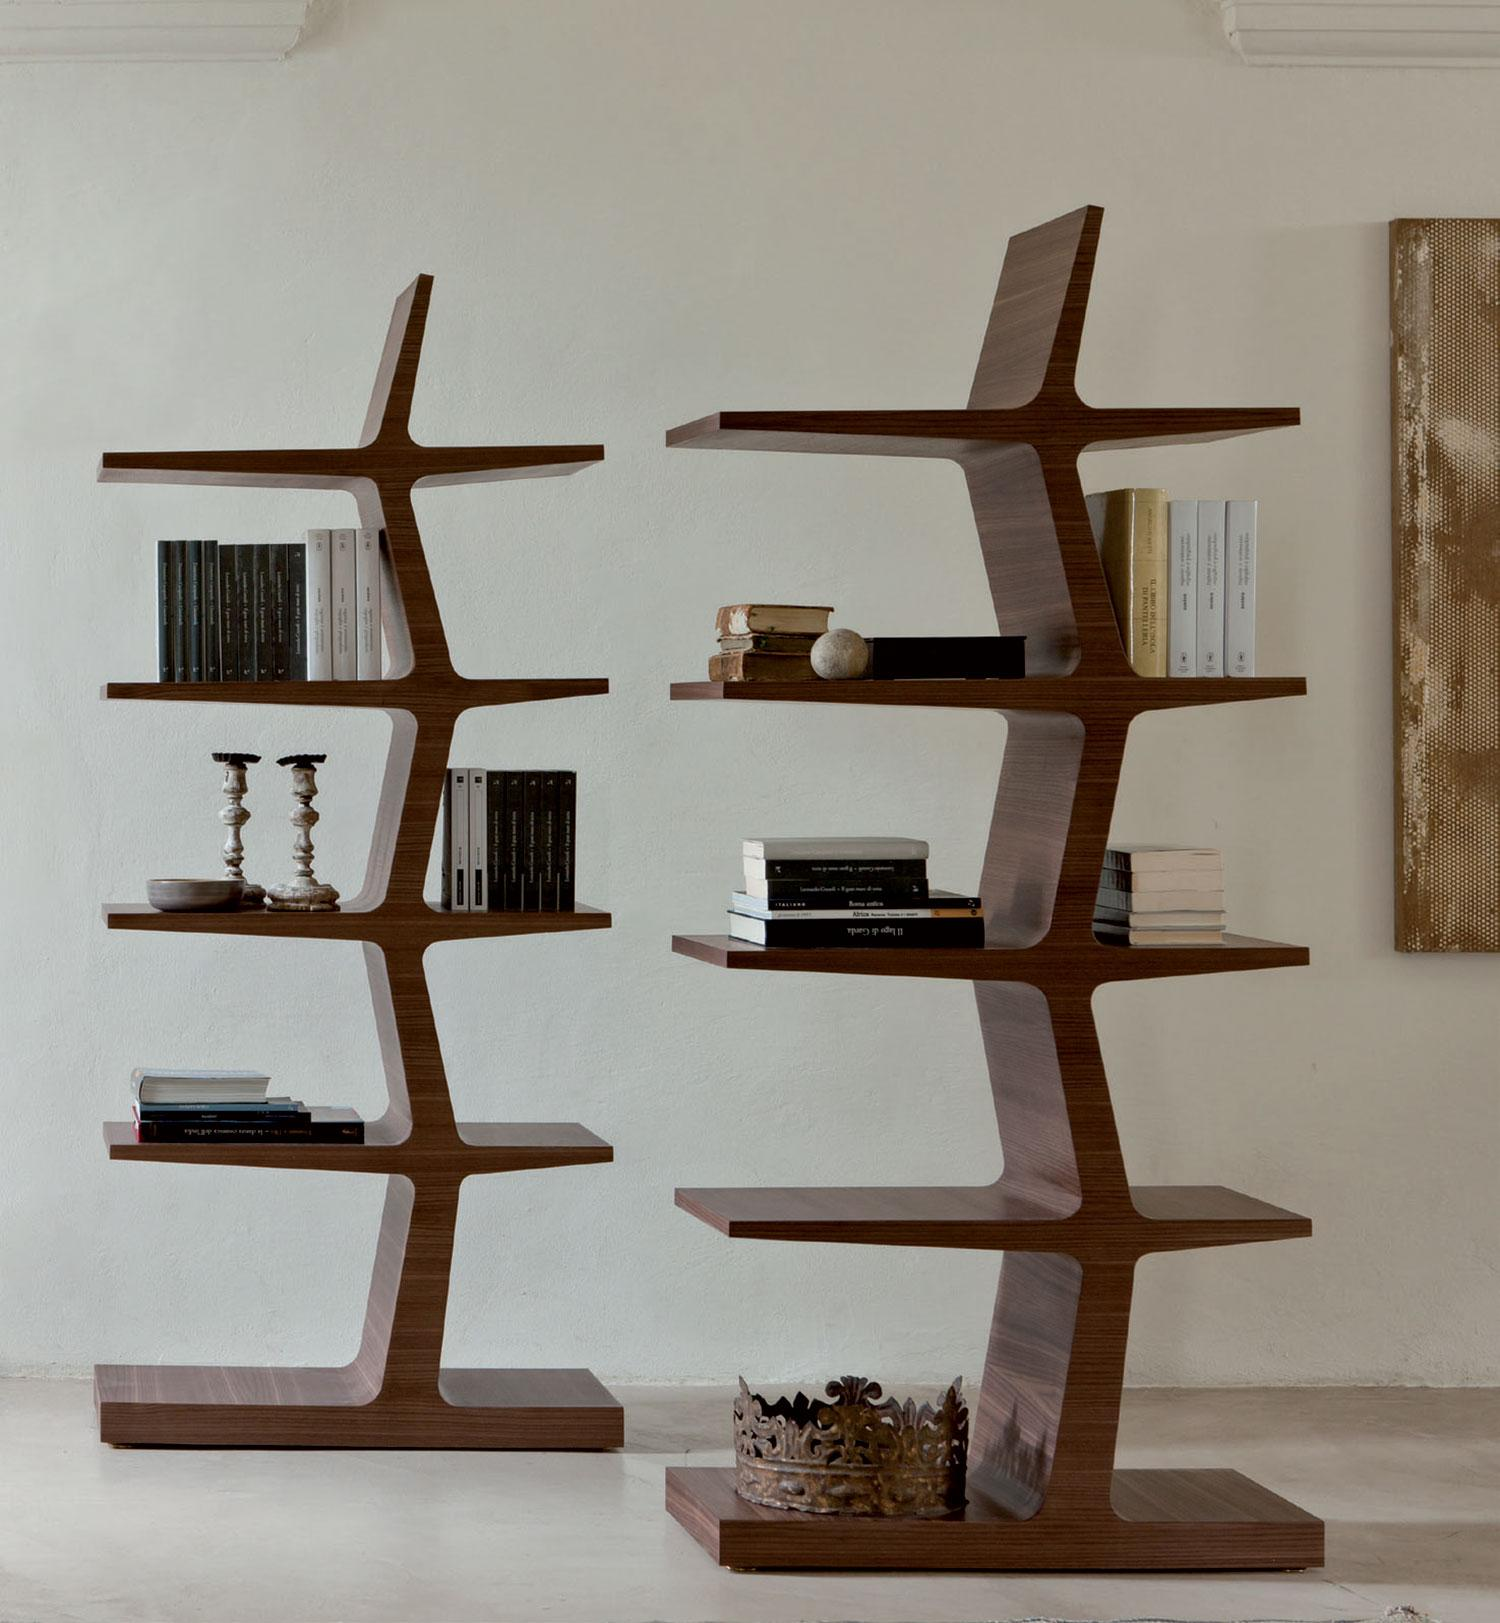 alba biblioth que en bois massif idd. Black Bedroom Furniture Sets. Home Design Ideas